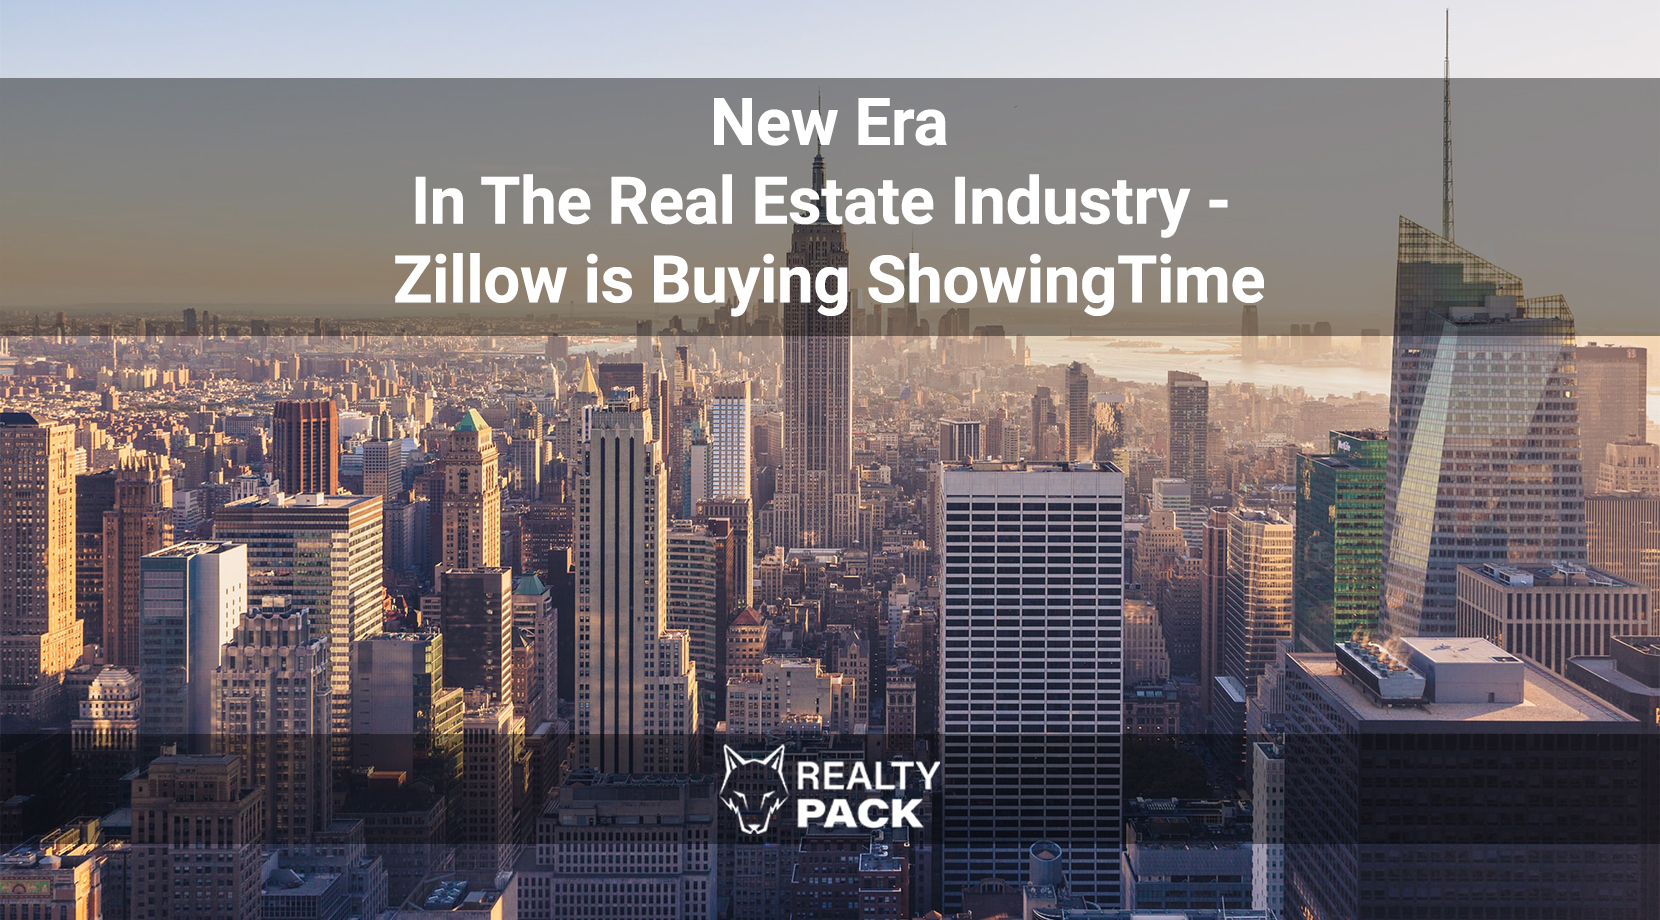 Zillow buying ShowigTime